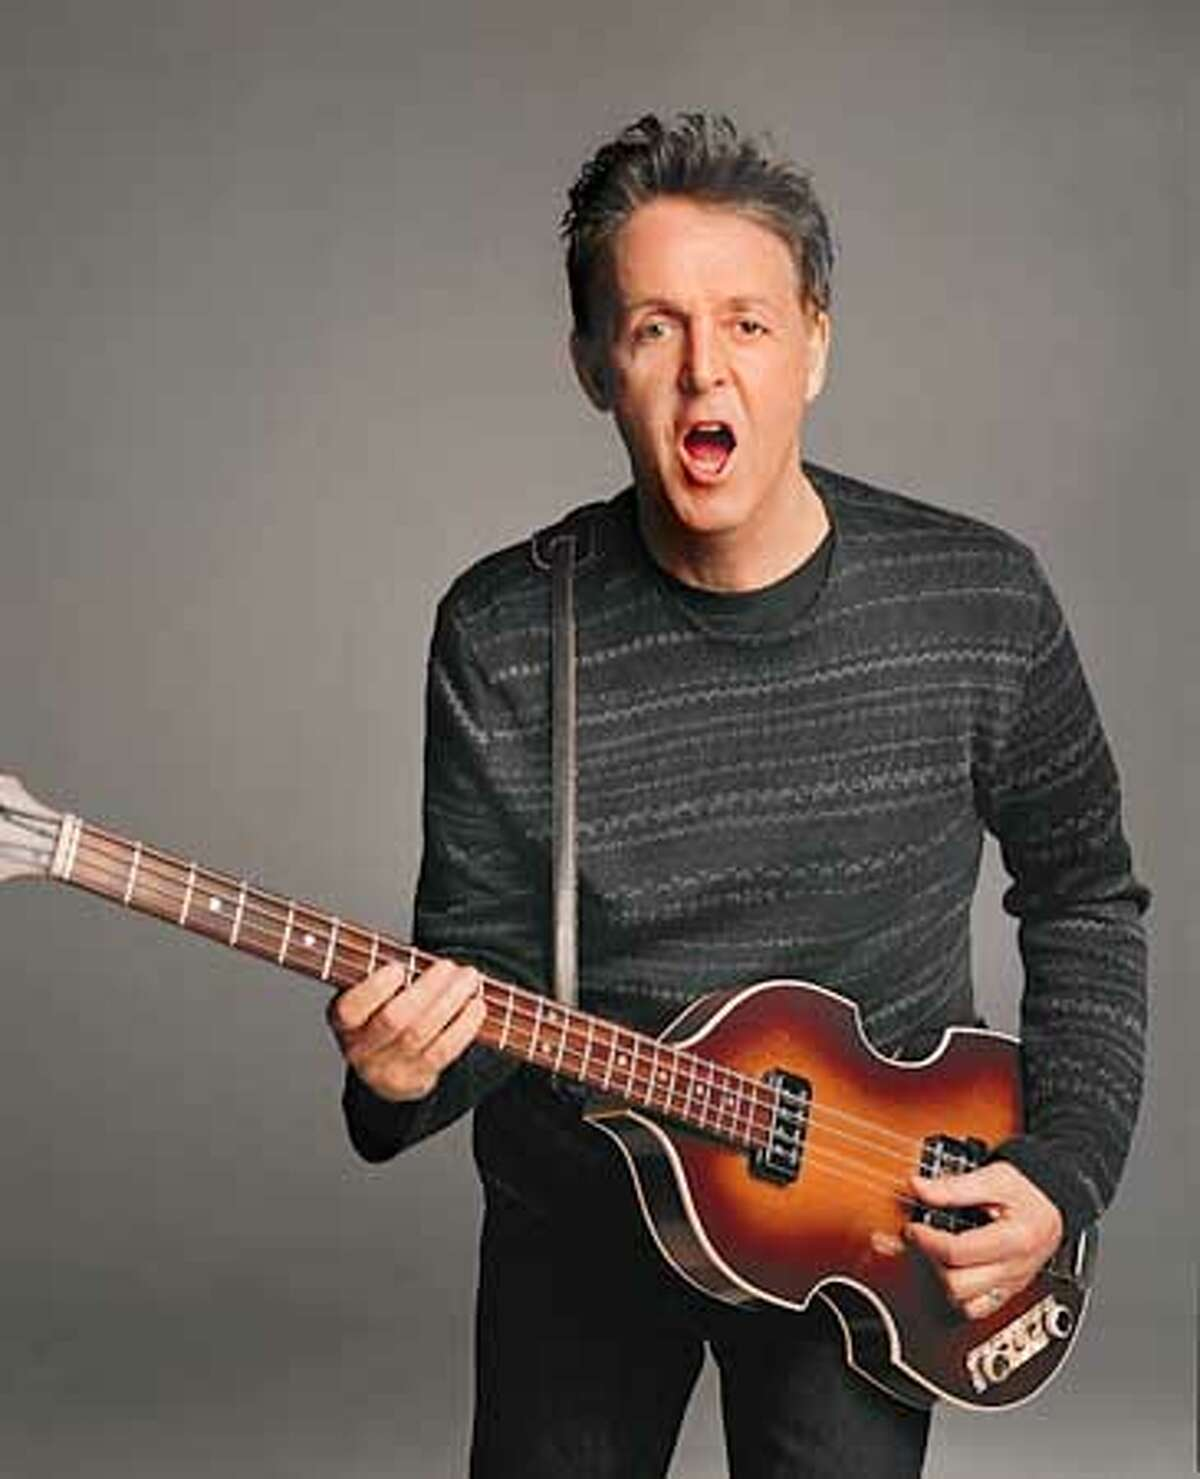 Paul McCartney. This Sweater Shot is exclusive to the SF Chronicle.�(The other Sweater shot is semi-exclusive.....it will be given to a few other papers). My email will be down after 1PM EST....please call 917.207.5989 or 212.979.2810 if you have any questions. Thanks, Allison (HANDOUT PHOTO)